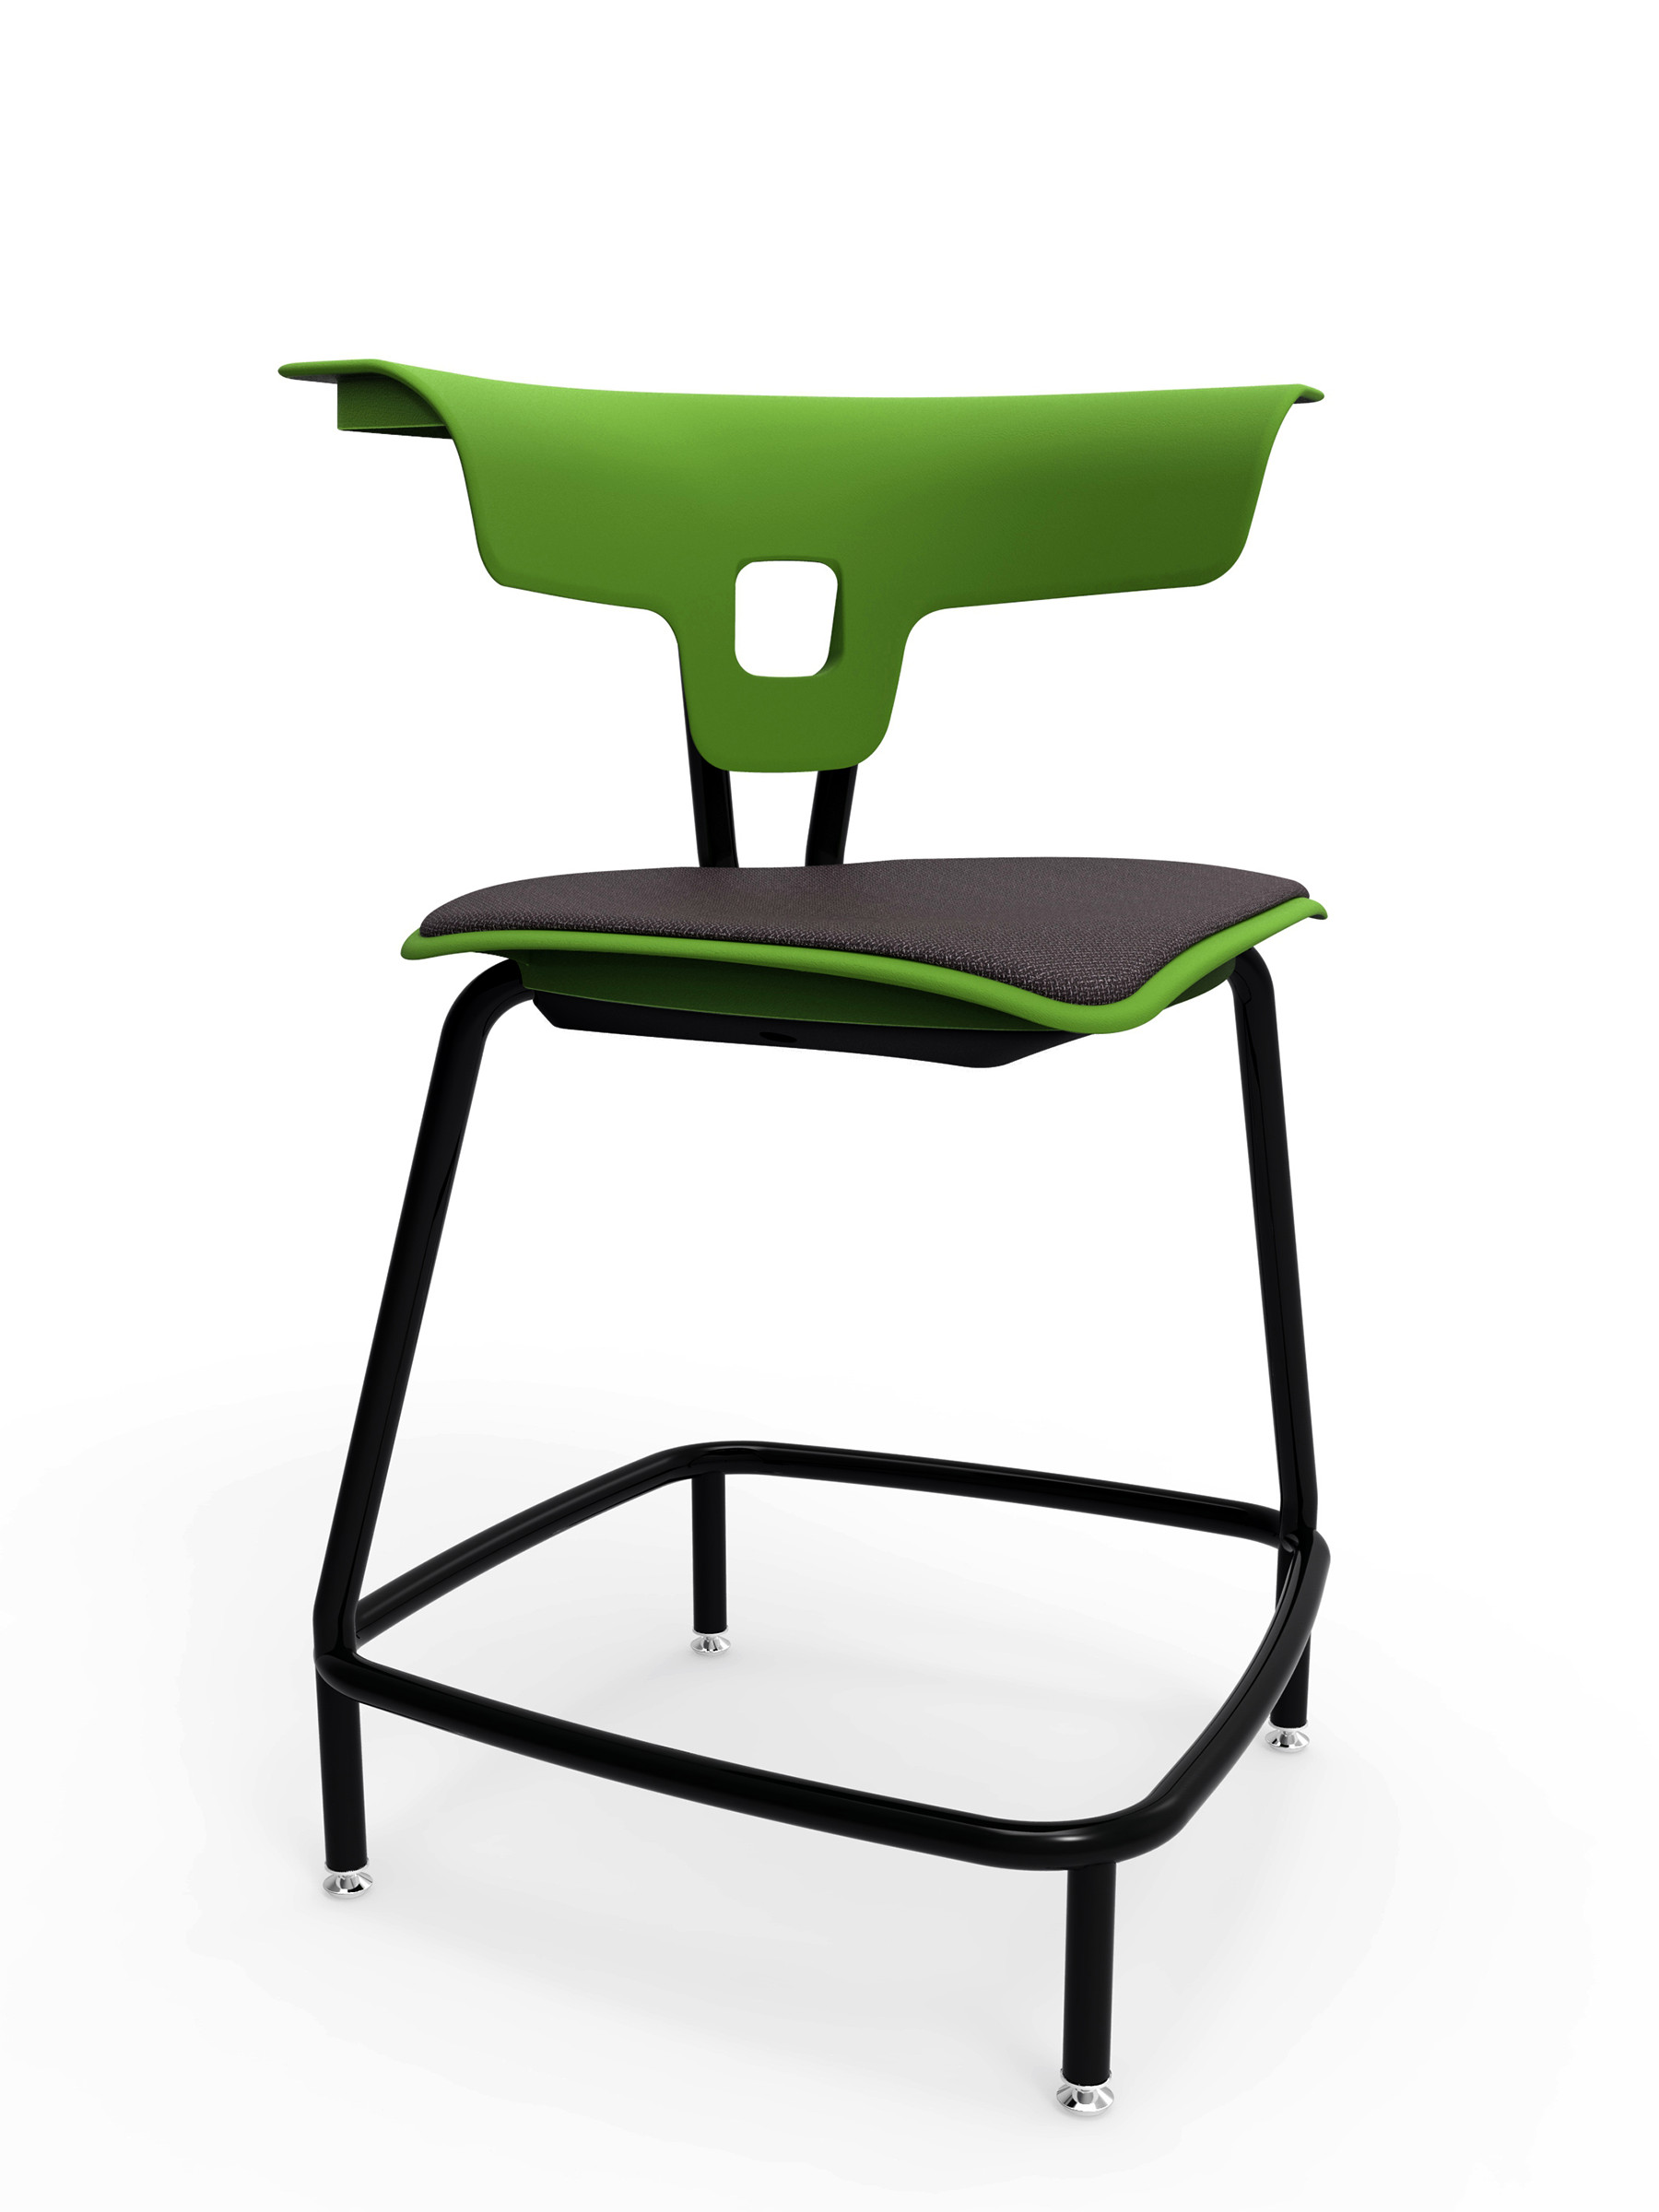 ki ruckus stool with upholstered seat